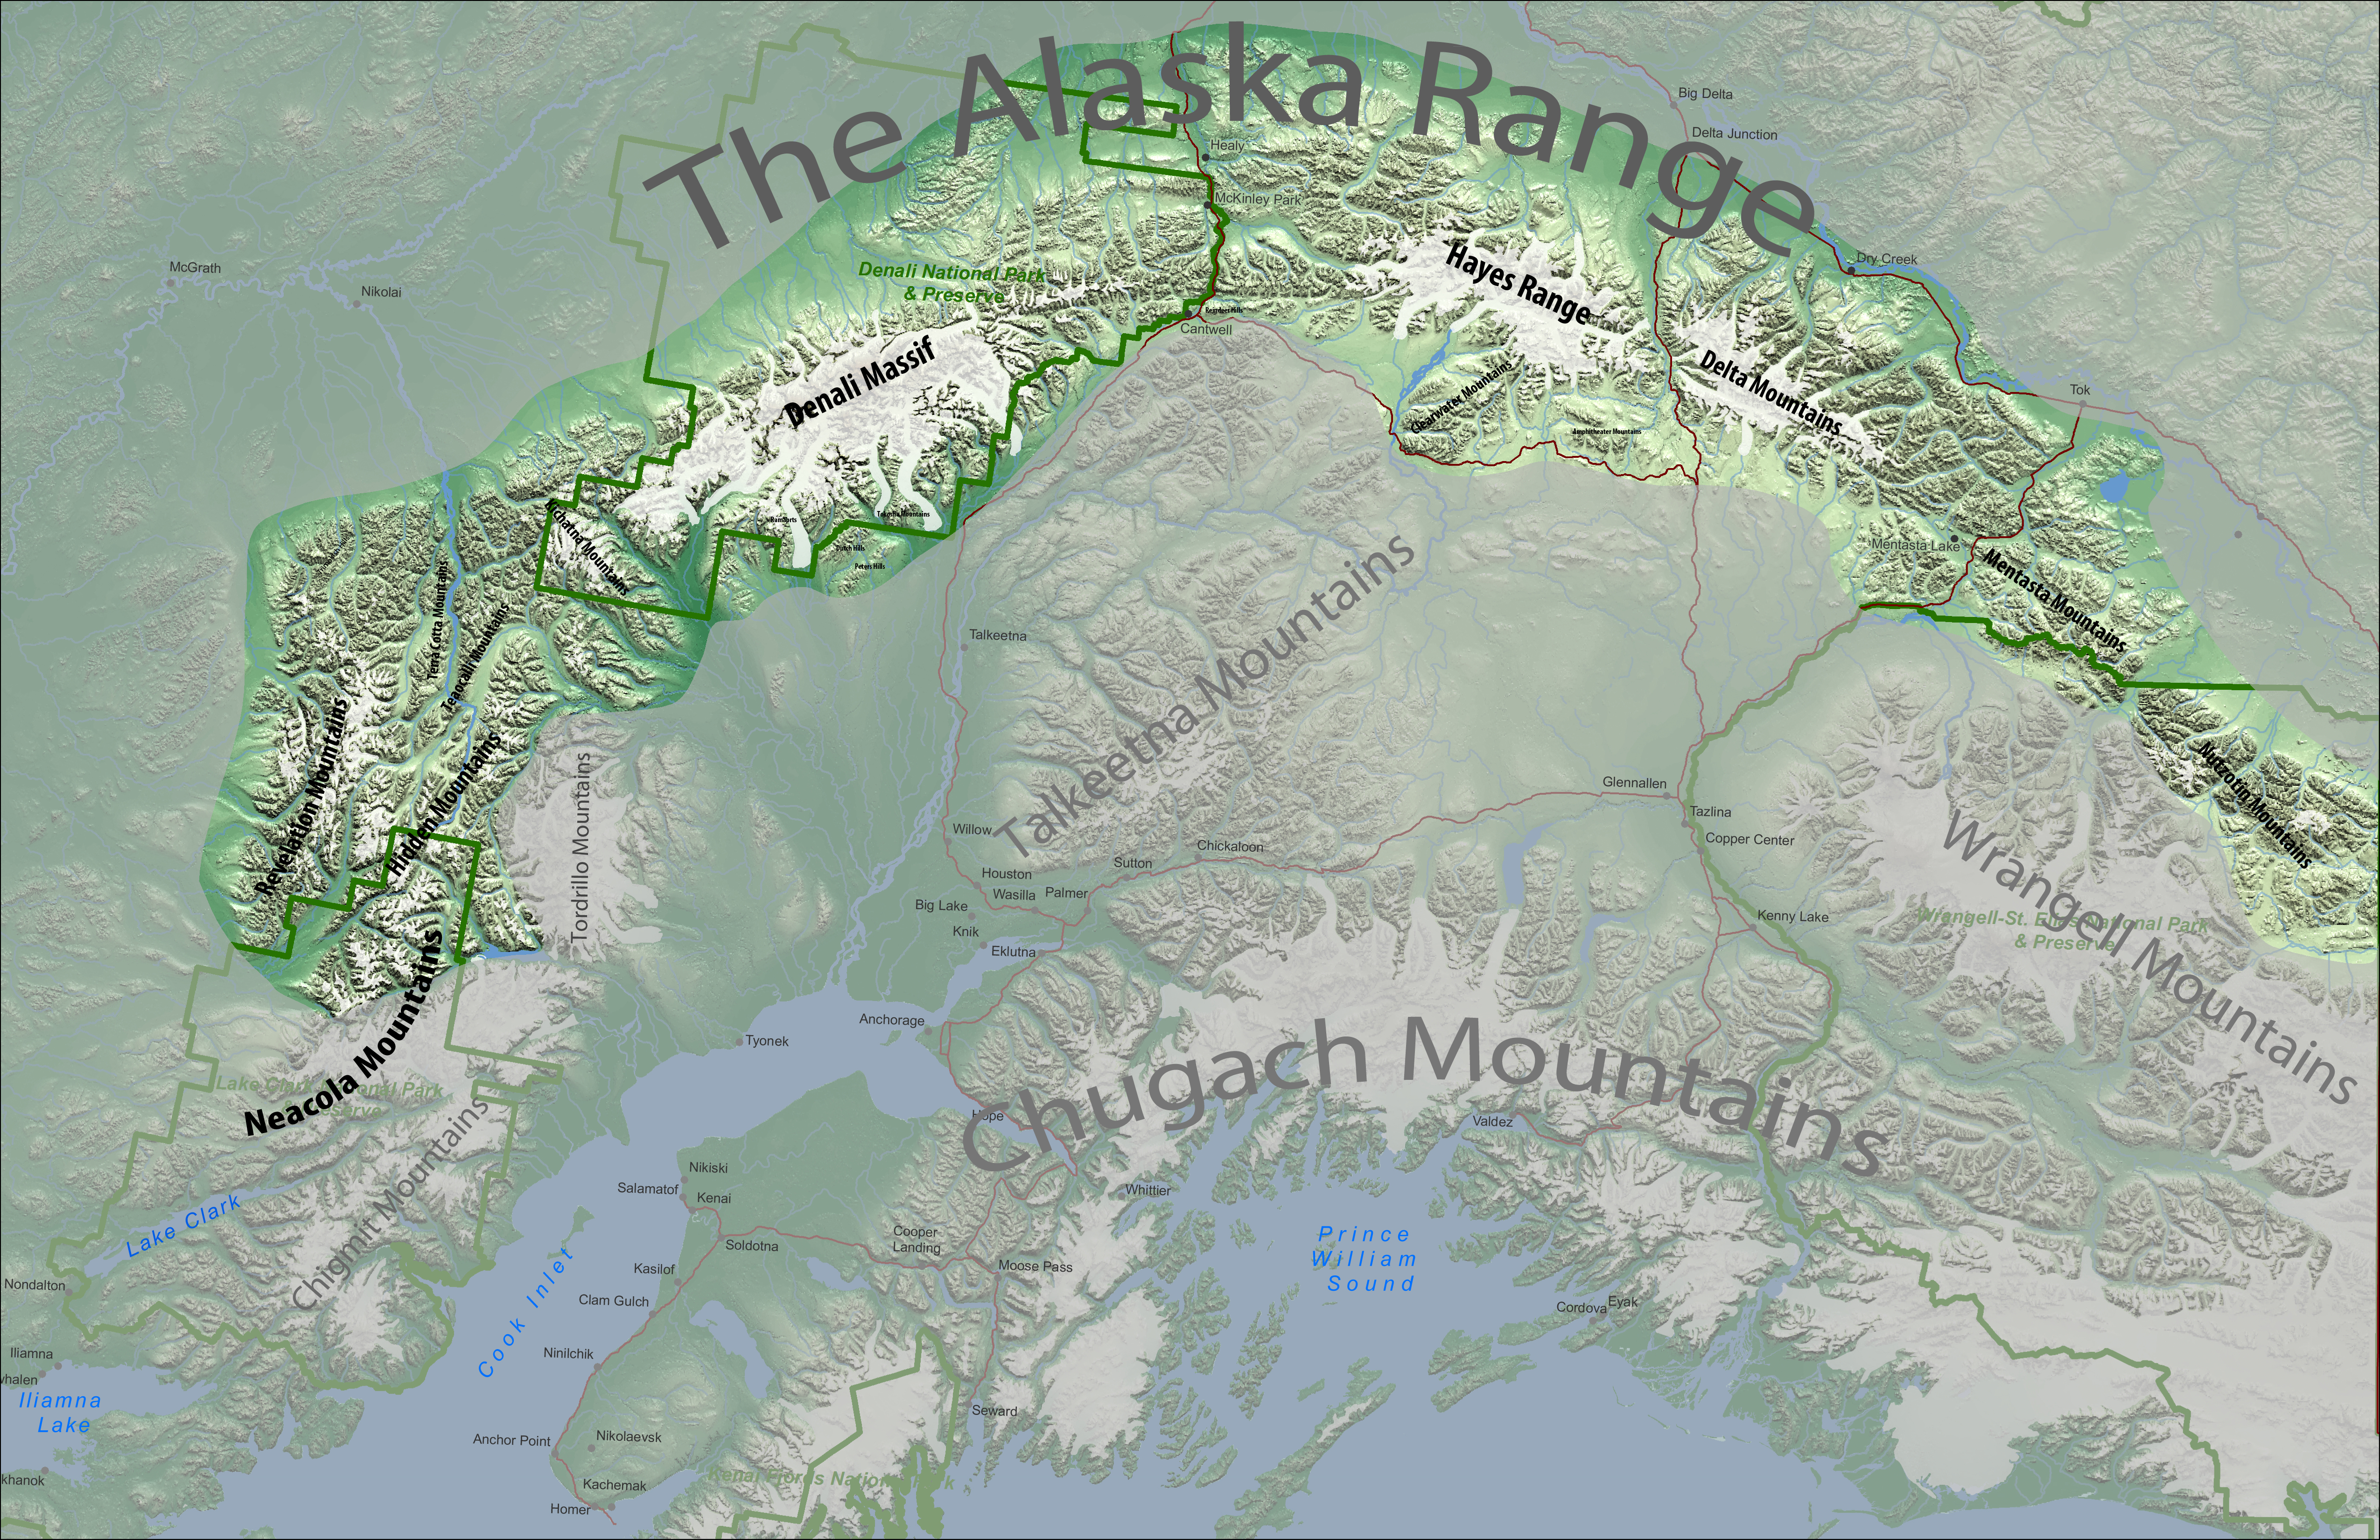 Where Is The Alaska Range The Alaska Range Project - Usgs topo maps alaska